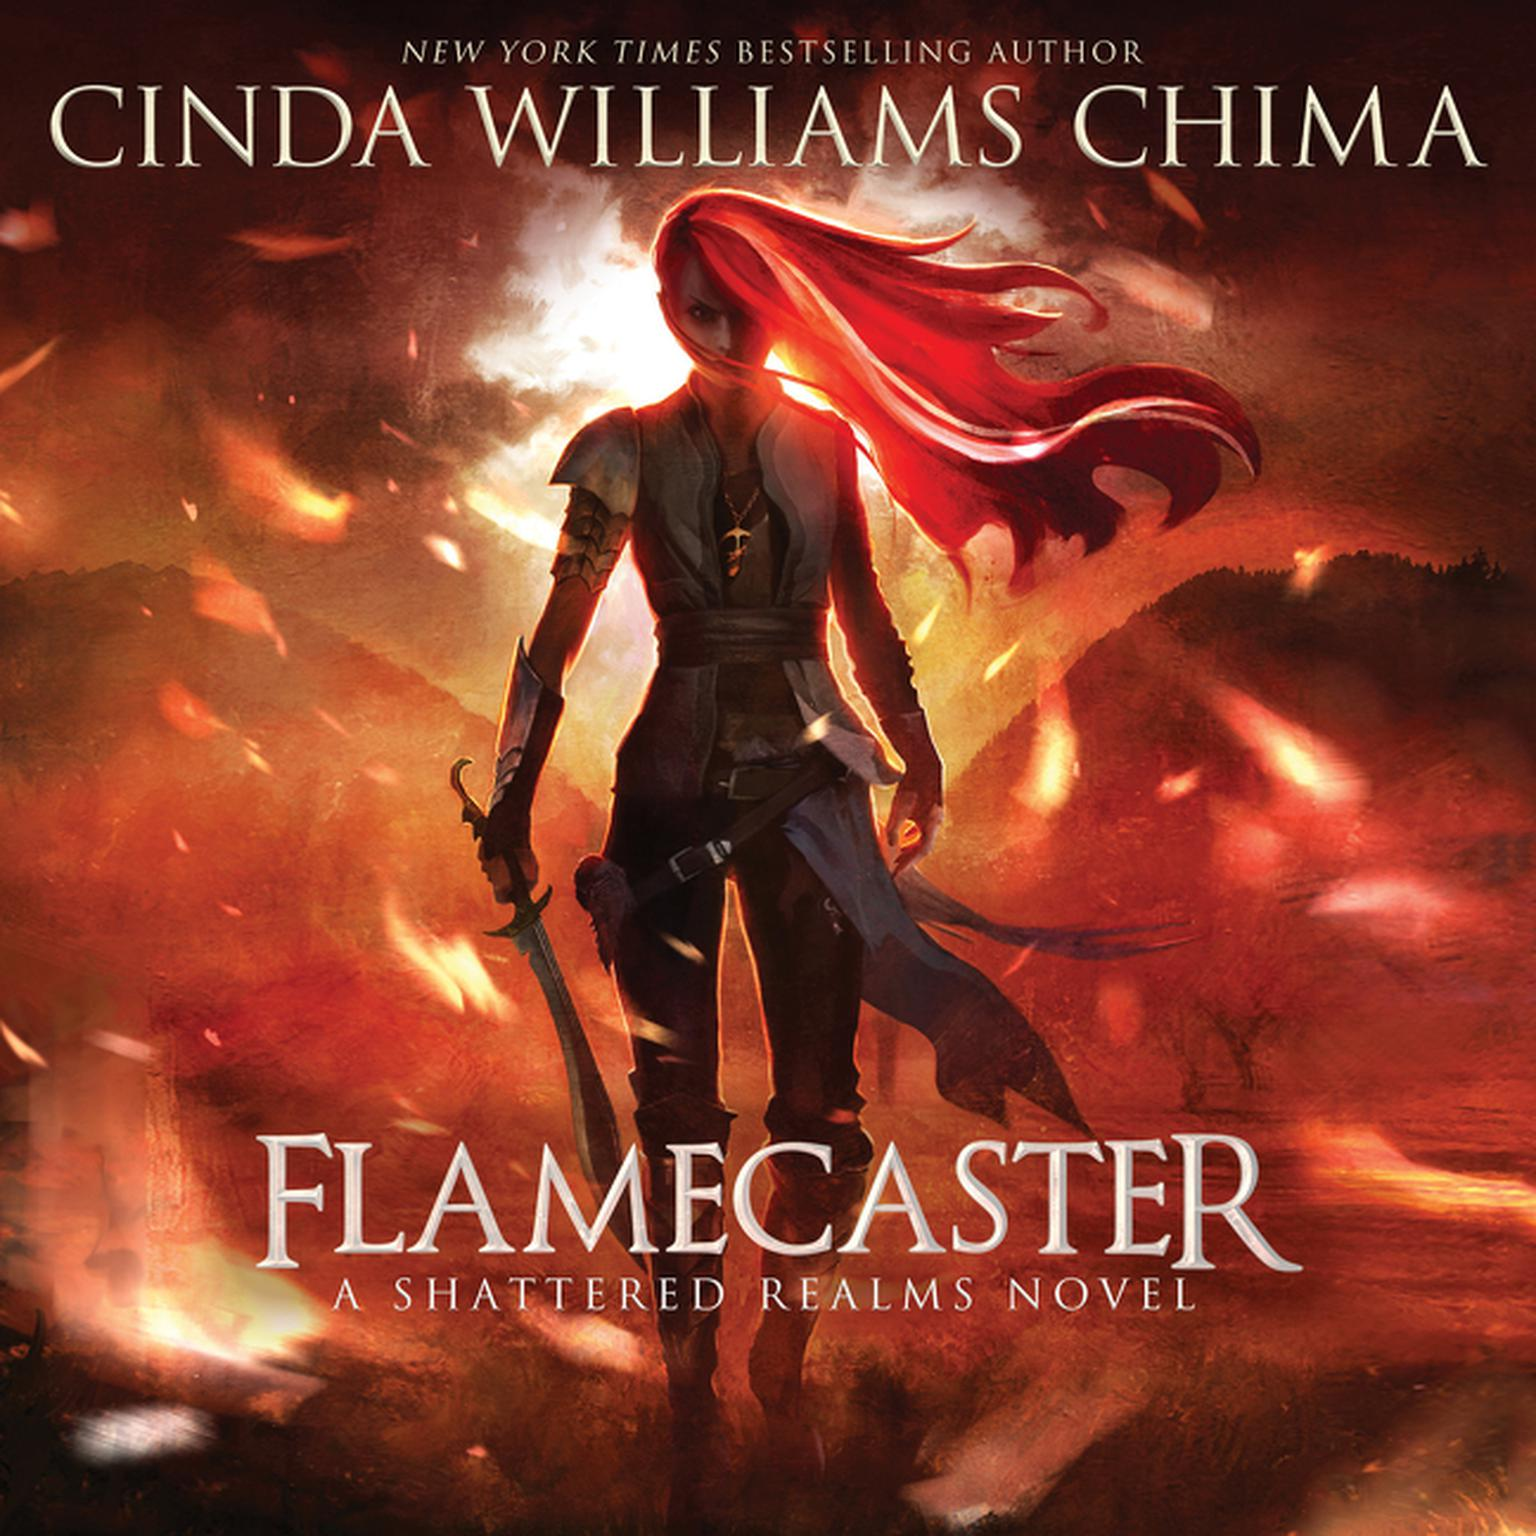 Printable Flamecaster: A Shattered Realms Novel Audiobook Cover Art